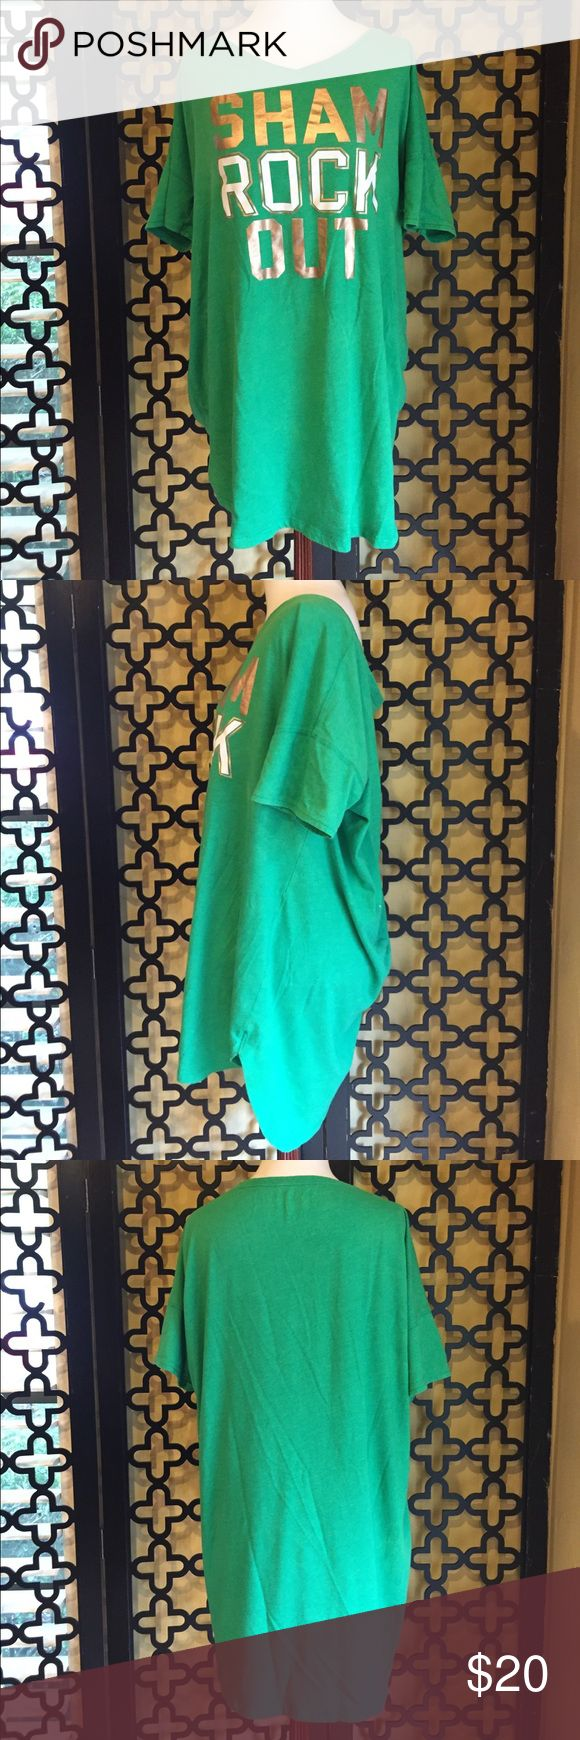 VS SHAM ROCK OUT/ ST PATTYS DAY TOP EUC! No rips or stains. Perfect for Saint Patrick's day! Looks great with white shorts! Gorgeous v-neck line. Measurements: 36in long, 12in sleeve length and 44in bust. Victoria's Secret Tops Tees - Short Sleeve